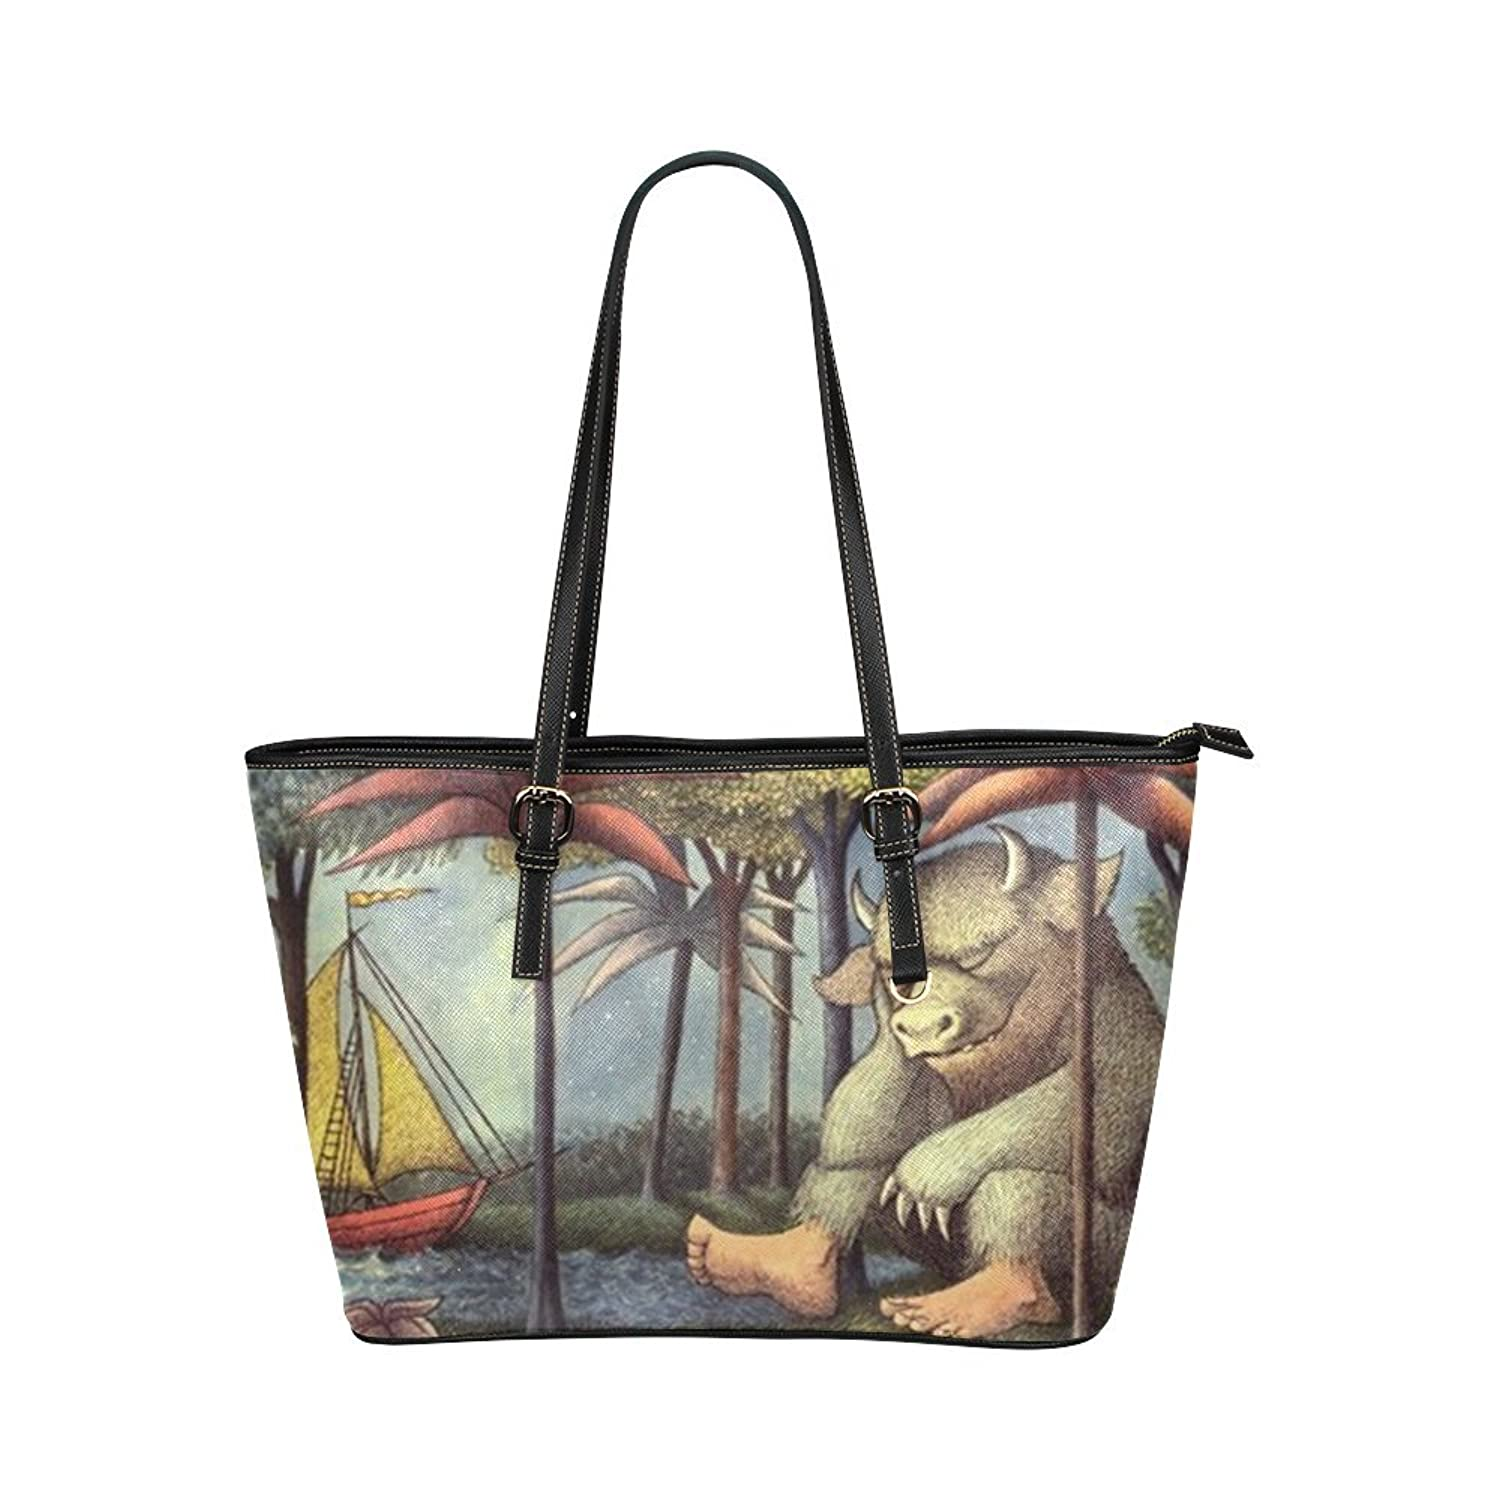 Where the Wild Things Are Women's Leather Tote Large Bag/Handbag/Shoulder Bag By Boom~Shakalaka